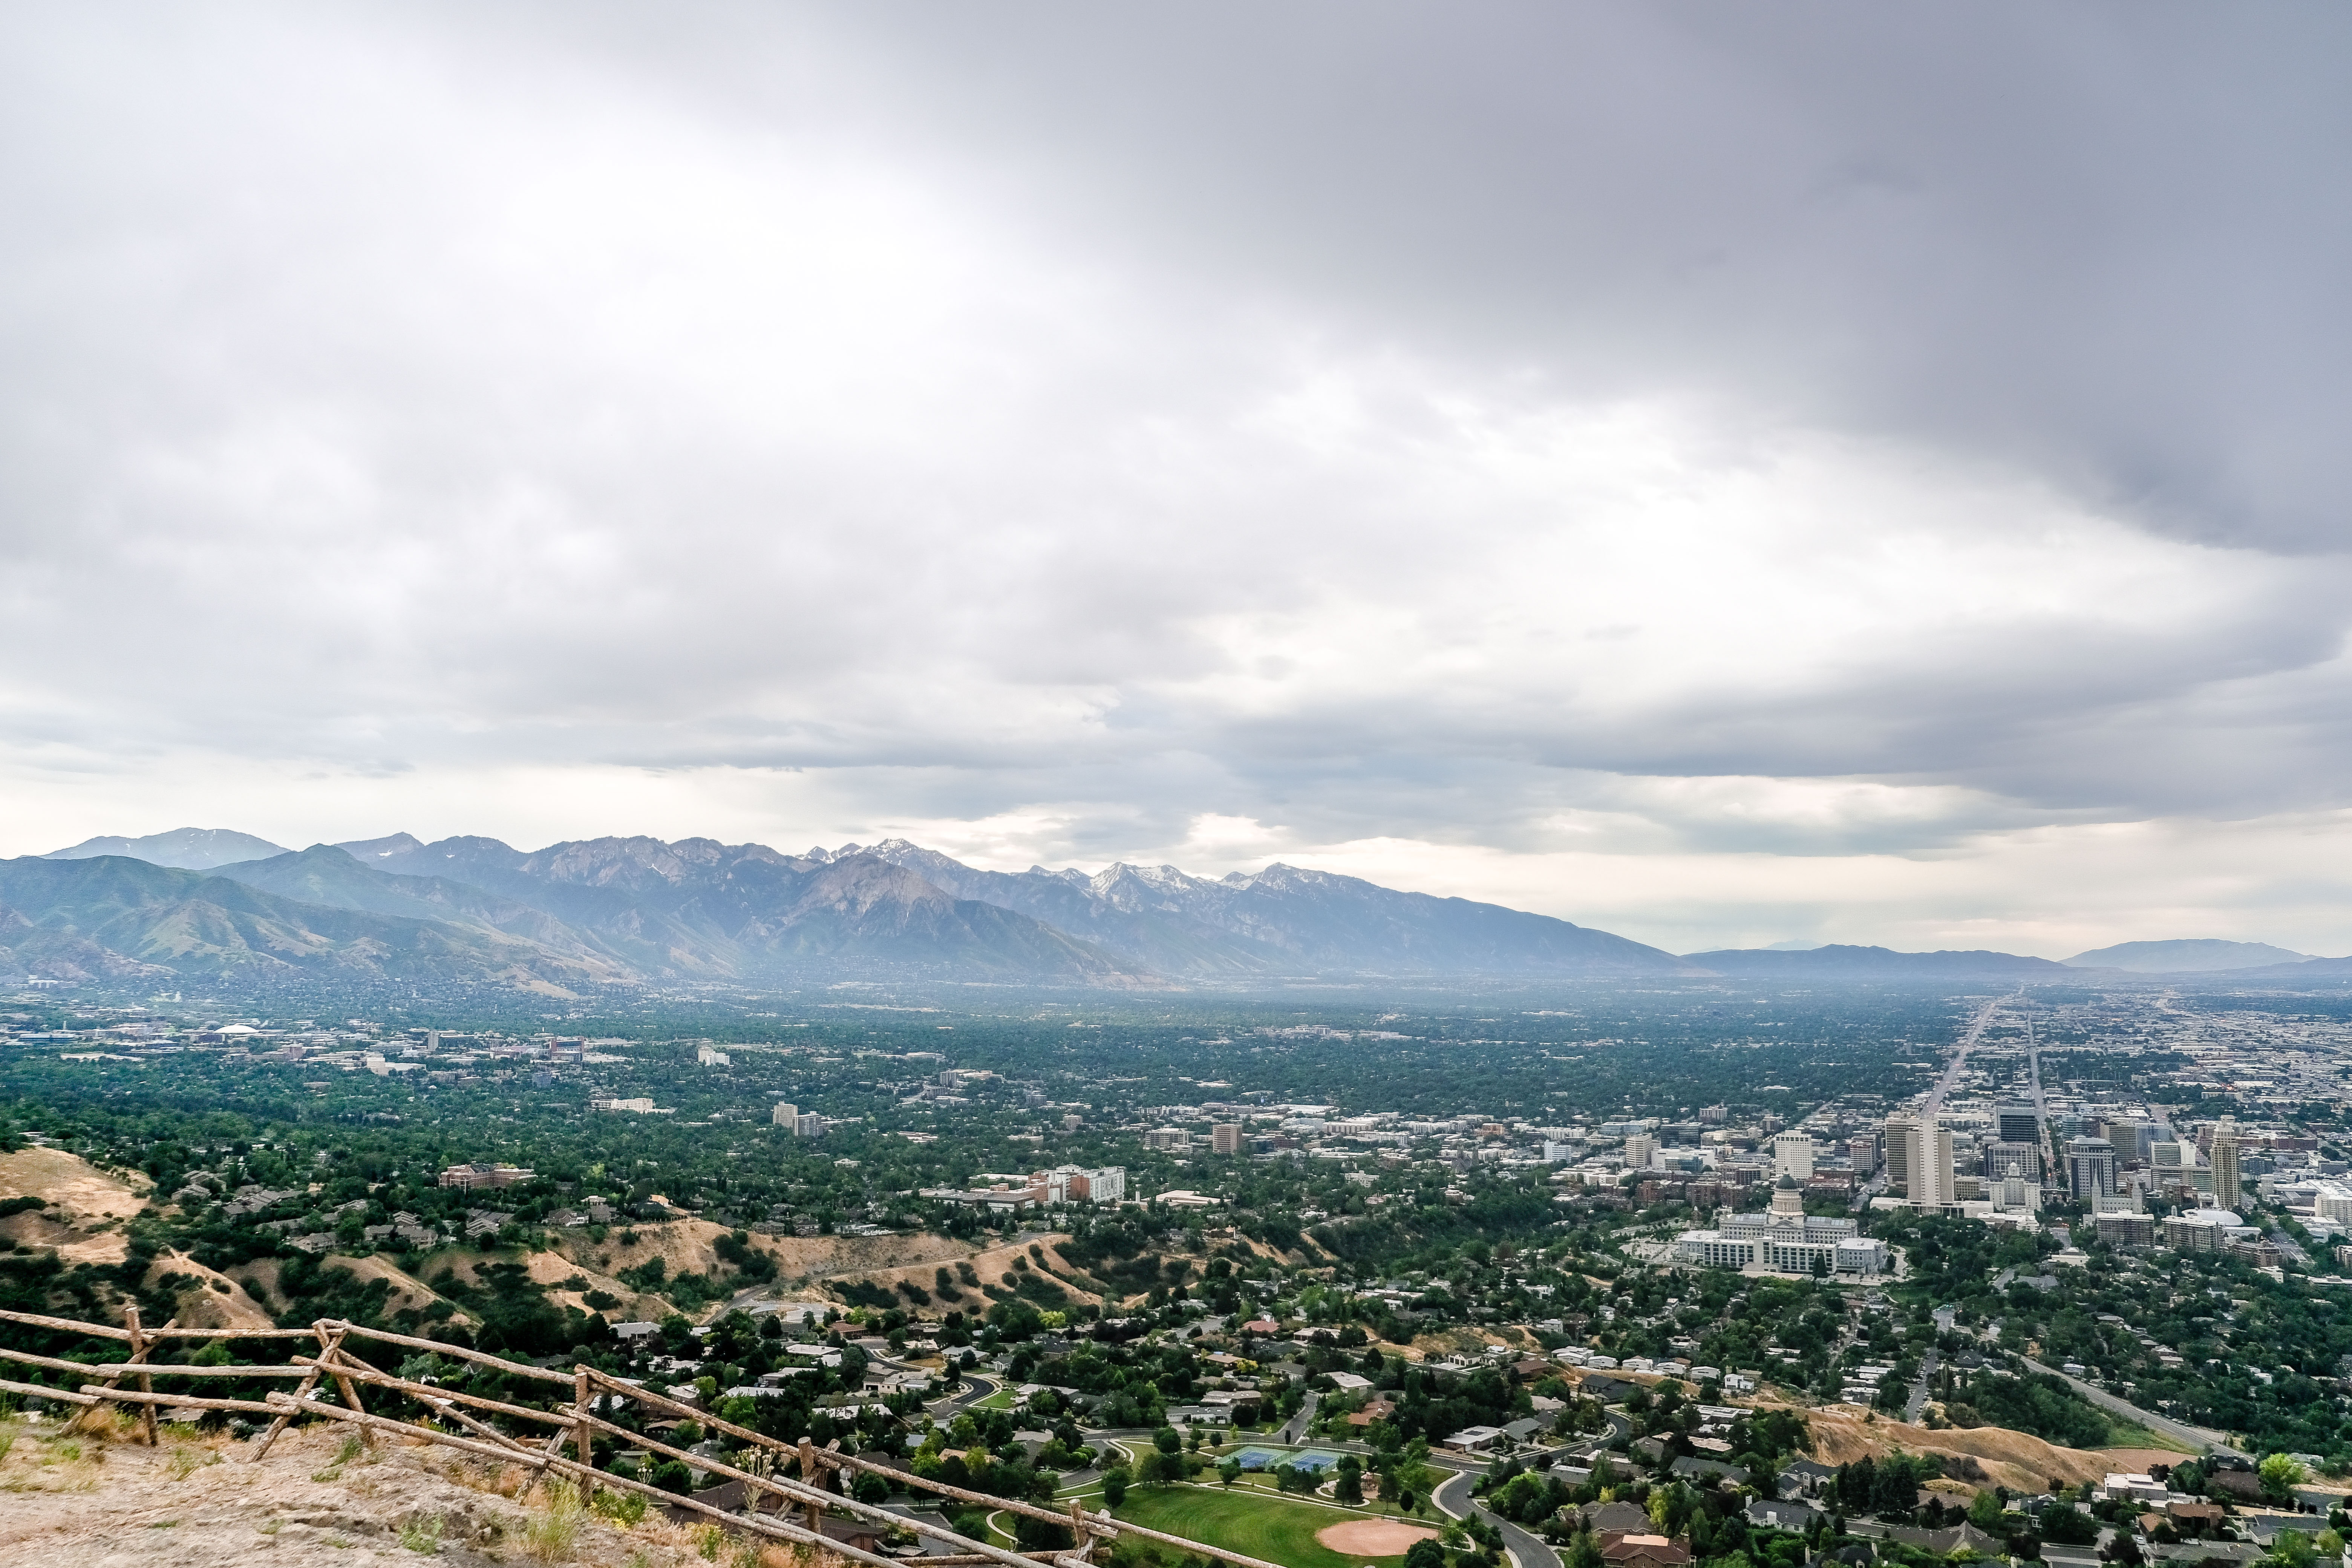 View of the salt lake valley looking south